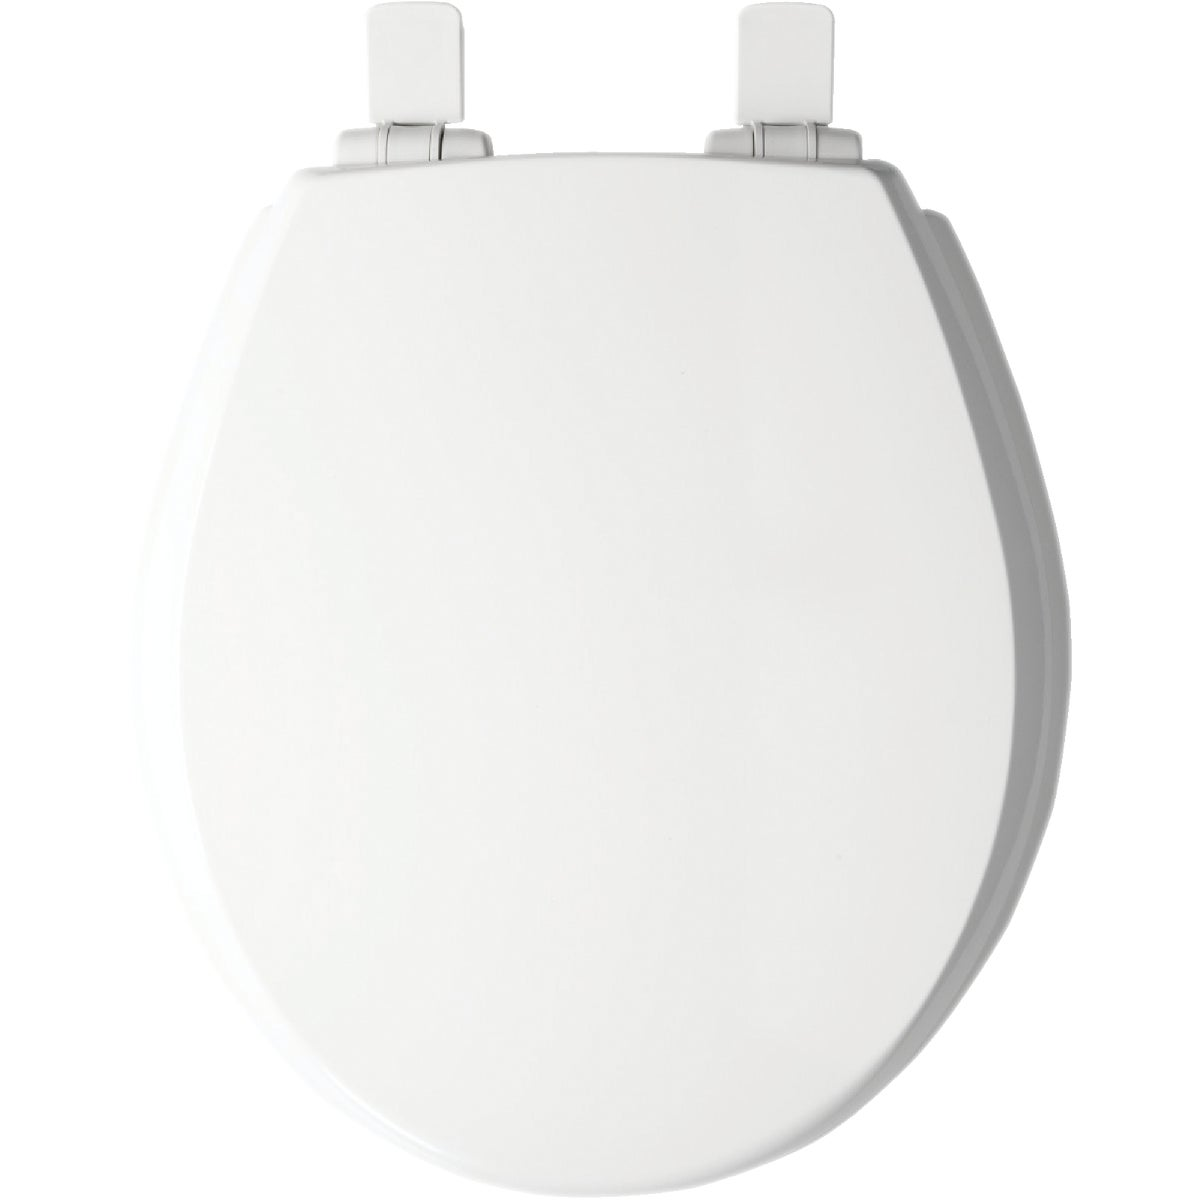 WHT RND WOOD TOILET SEAT - 48E2-000 by Bemis Mfg